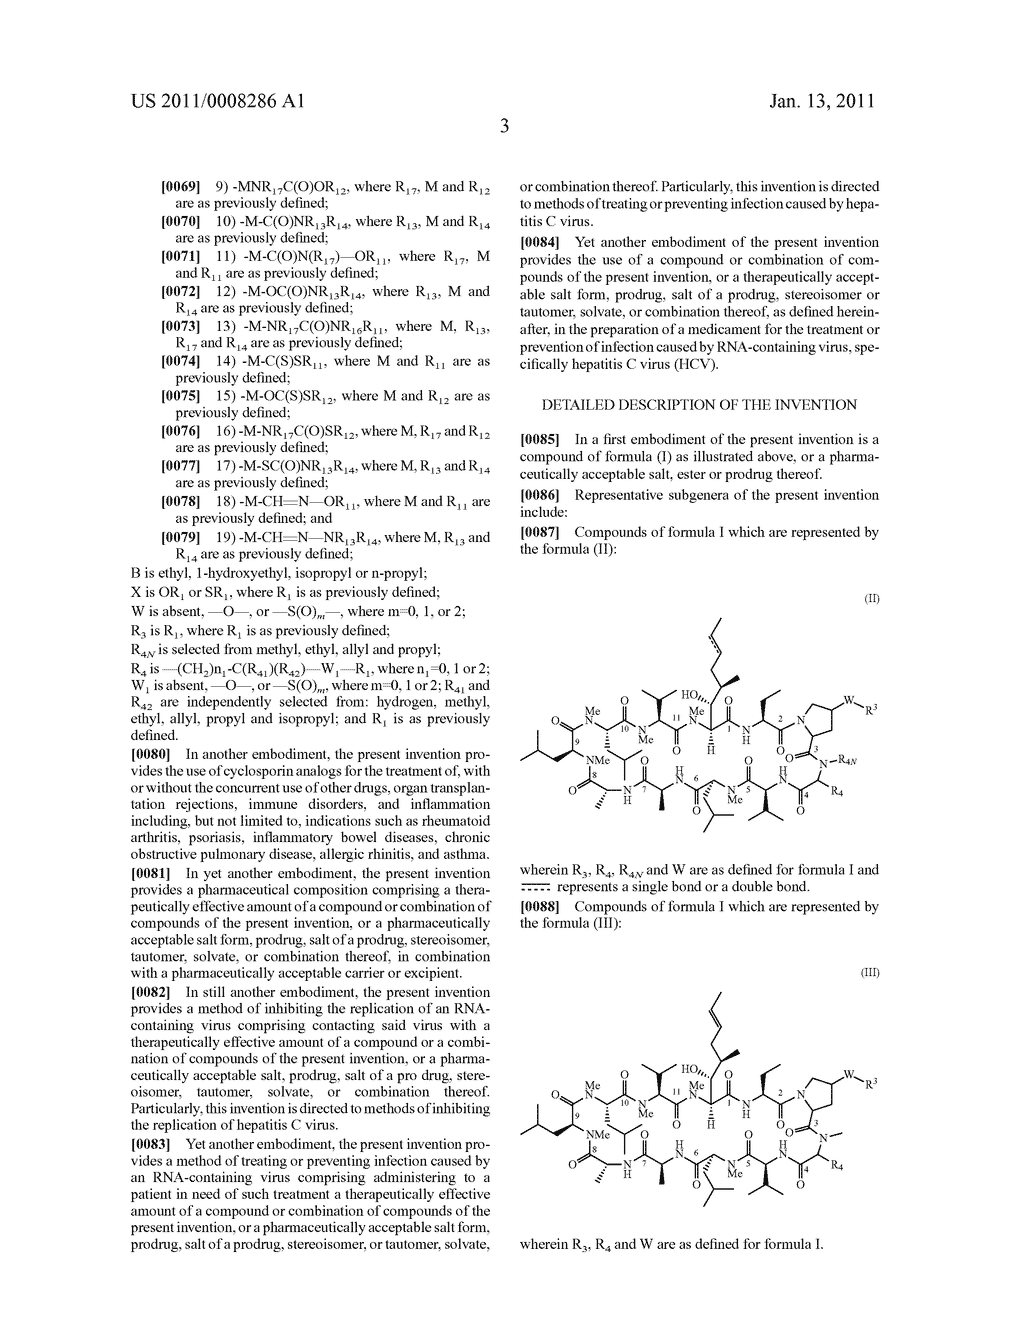 NOVEL PROLINE SUBSTITUTED CYCLOSPORIN ANALOGUES - diagram, schematic, and image 04